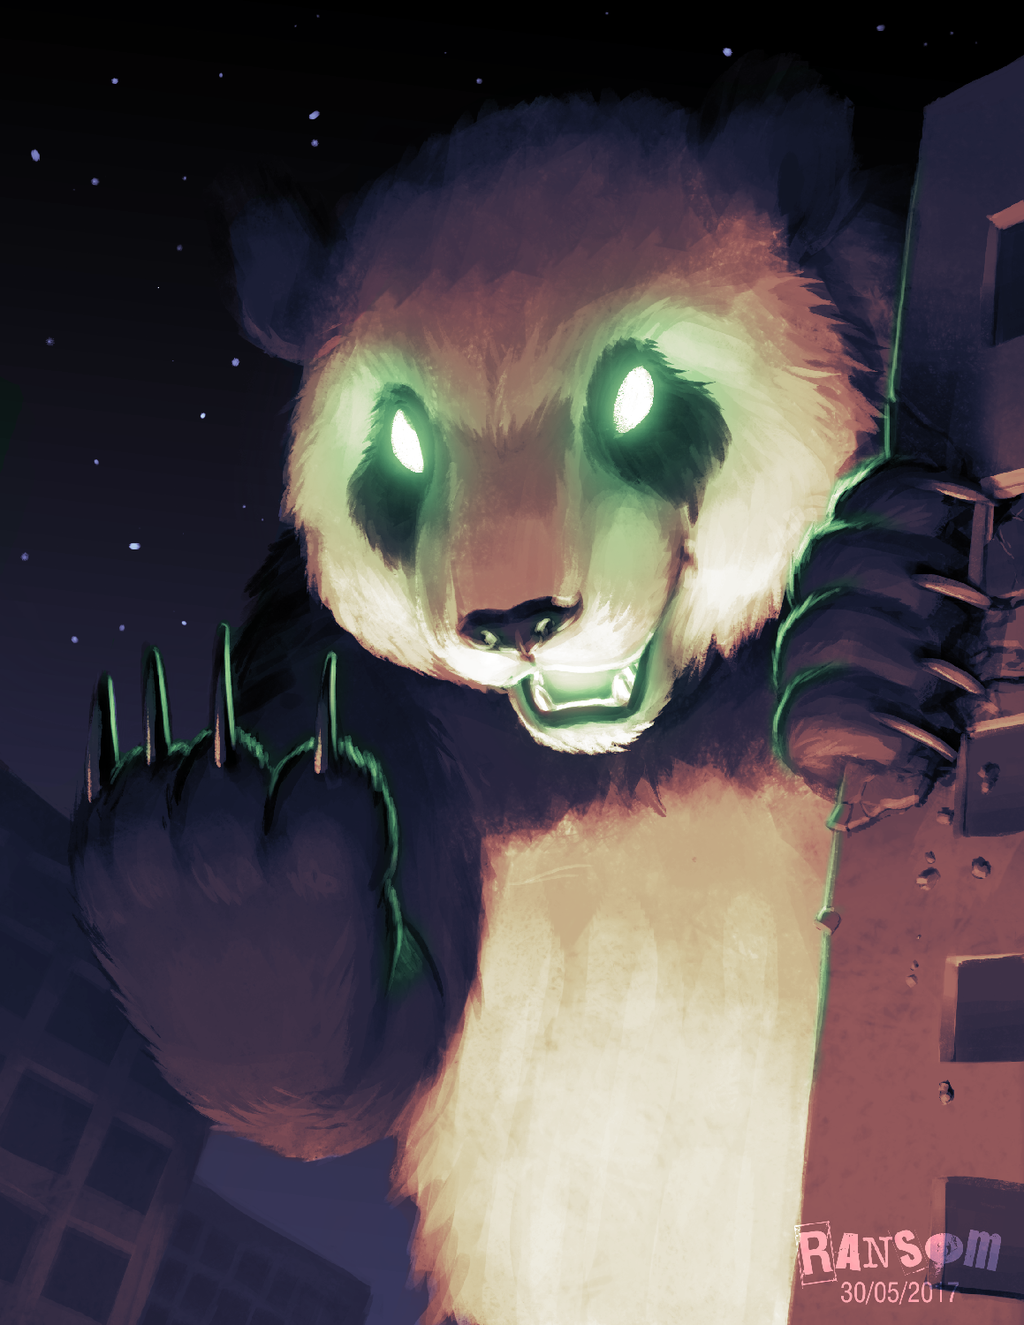 Revenge of the Gigantic Panda